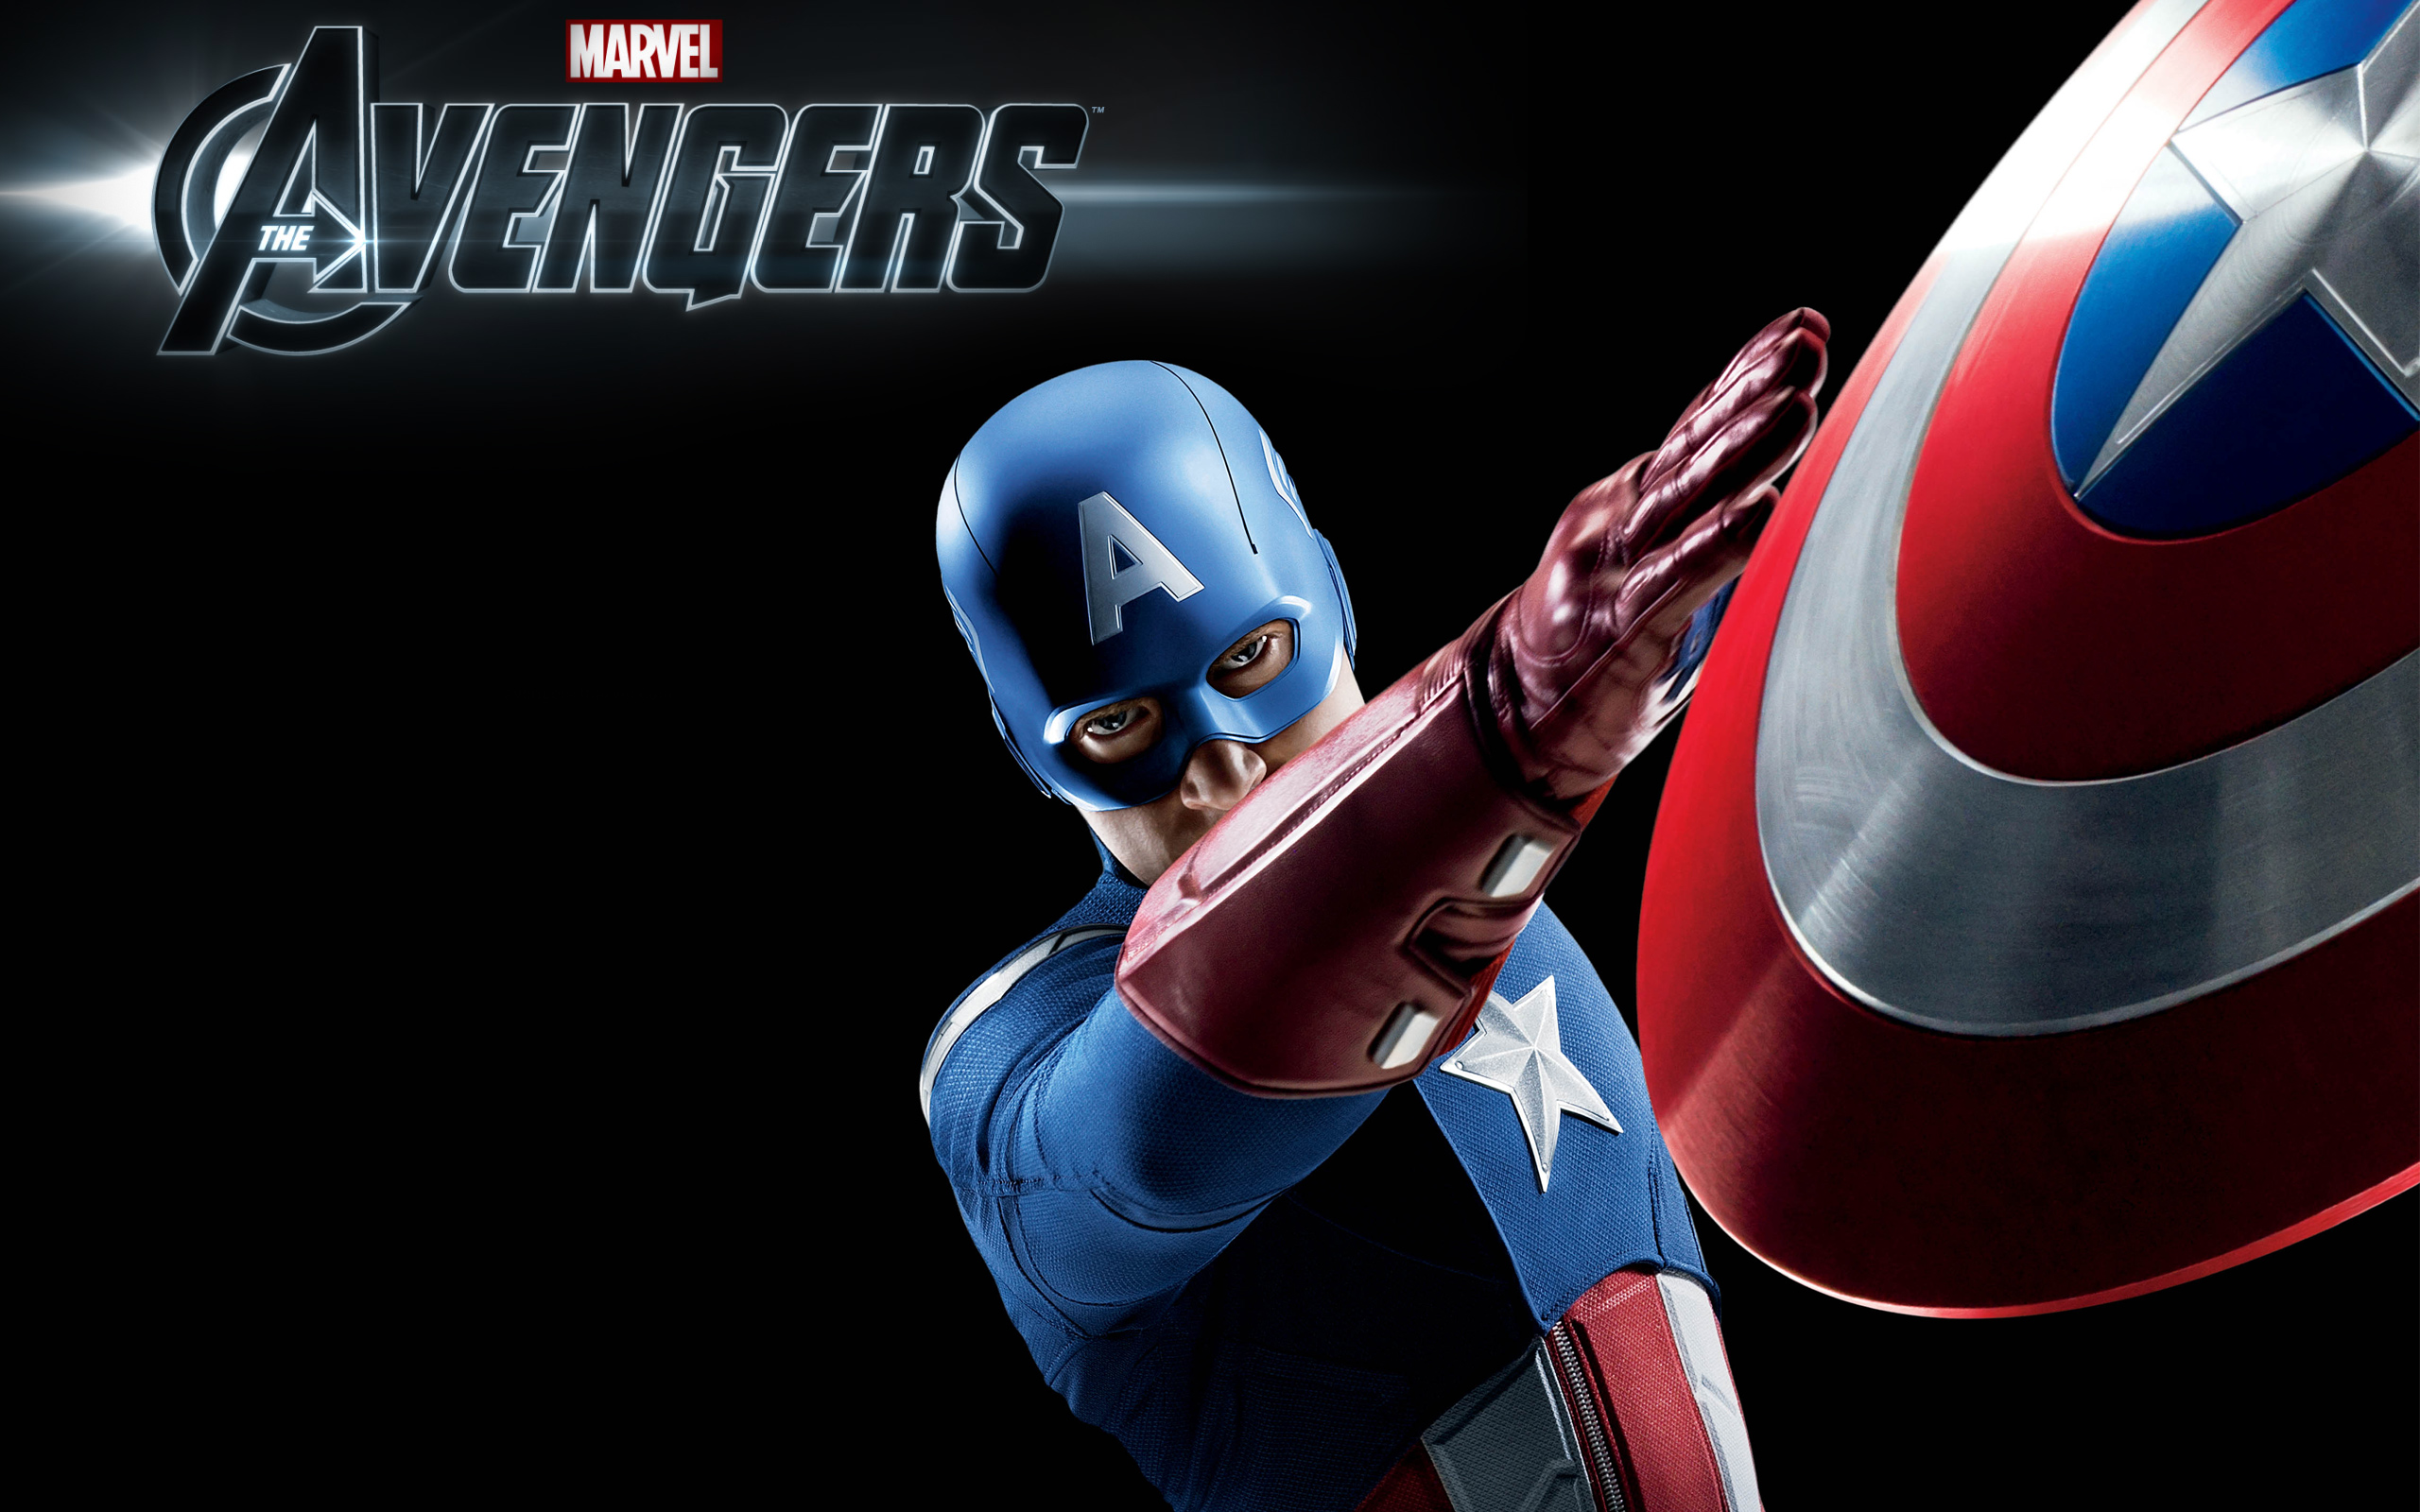 Hd wallpaper of captain america - Captain America In The Avengers Wallpapers Hd Wallpapers